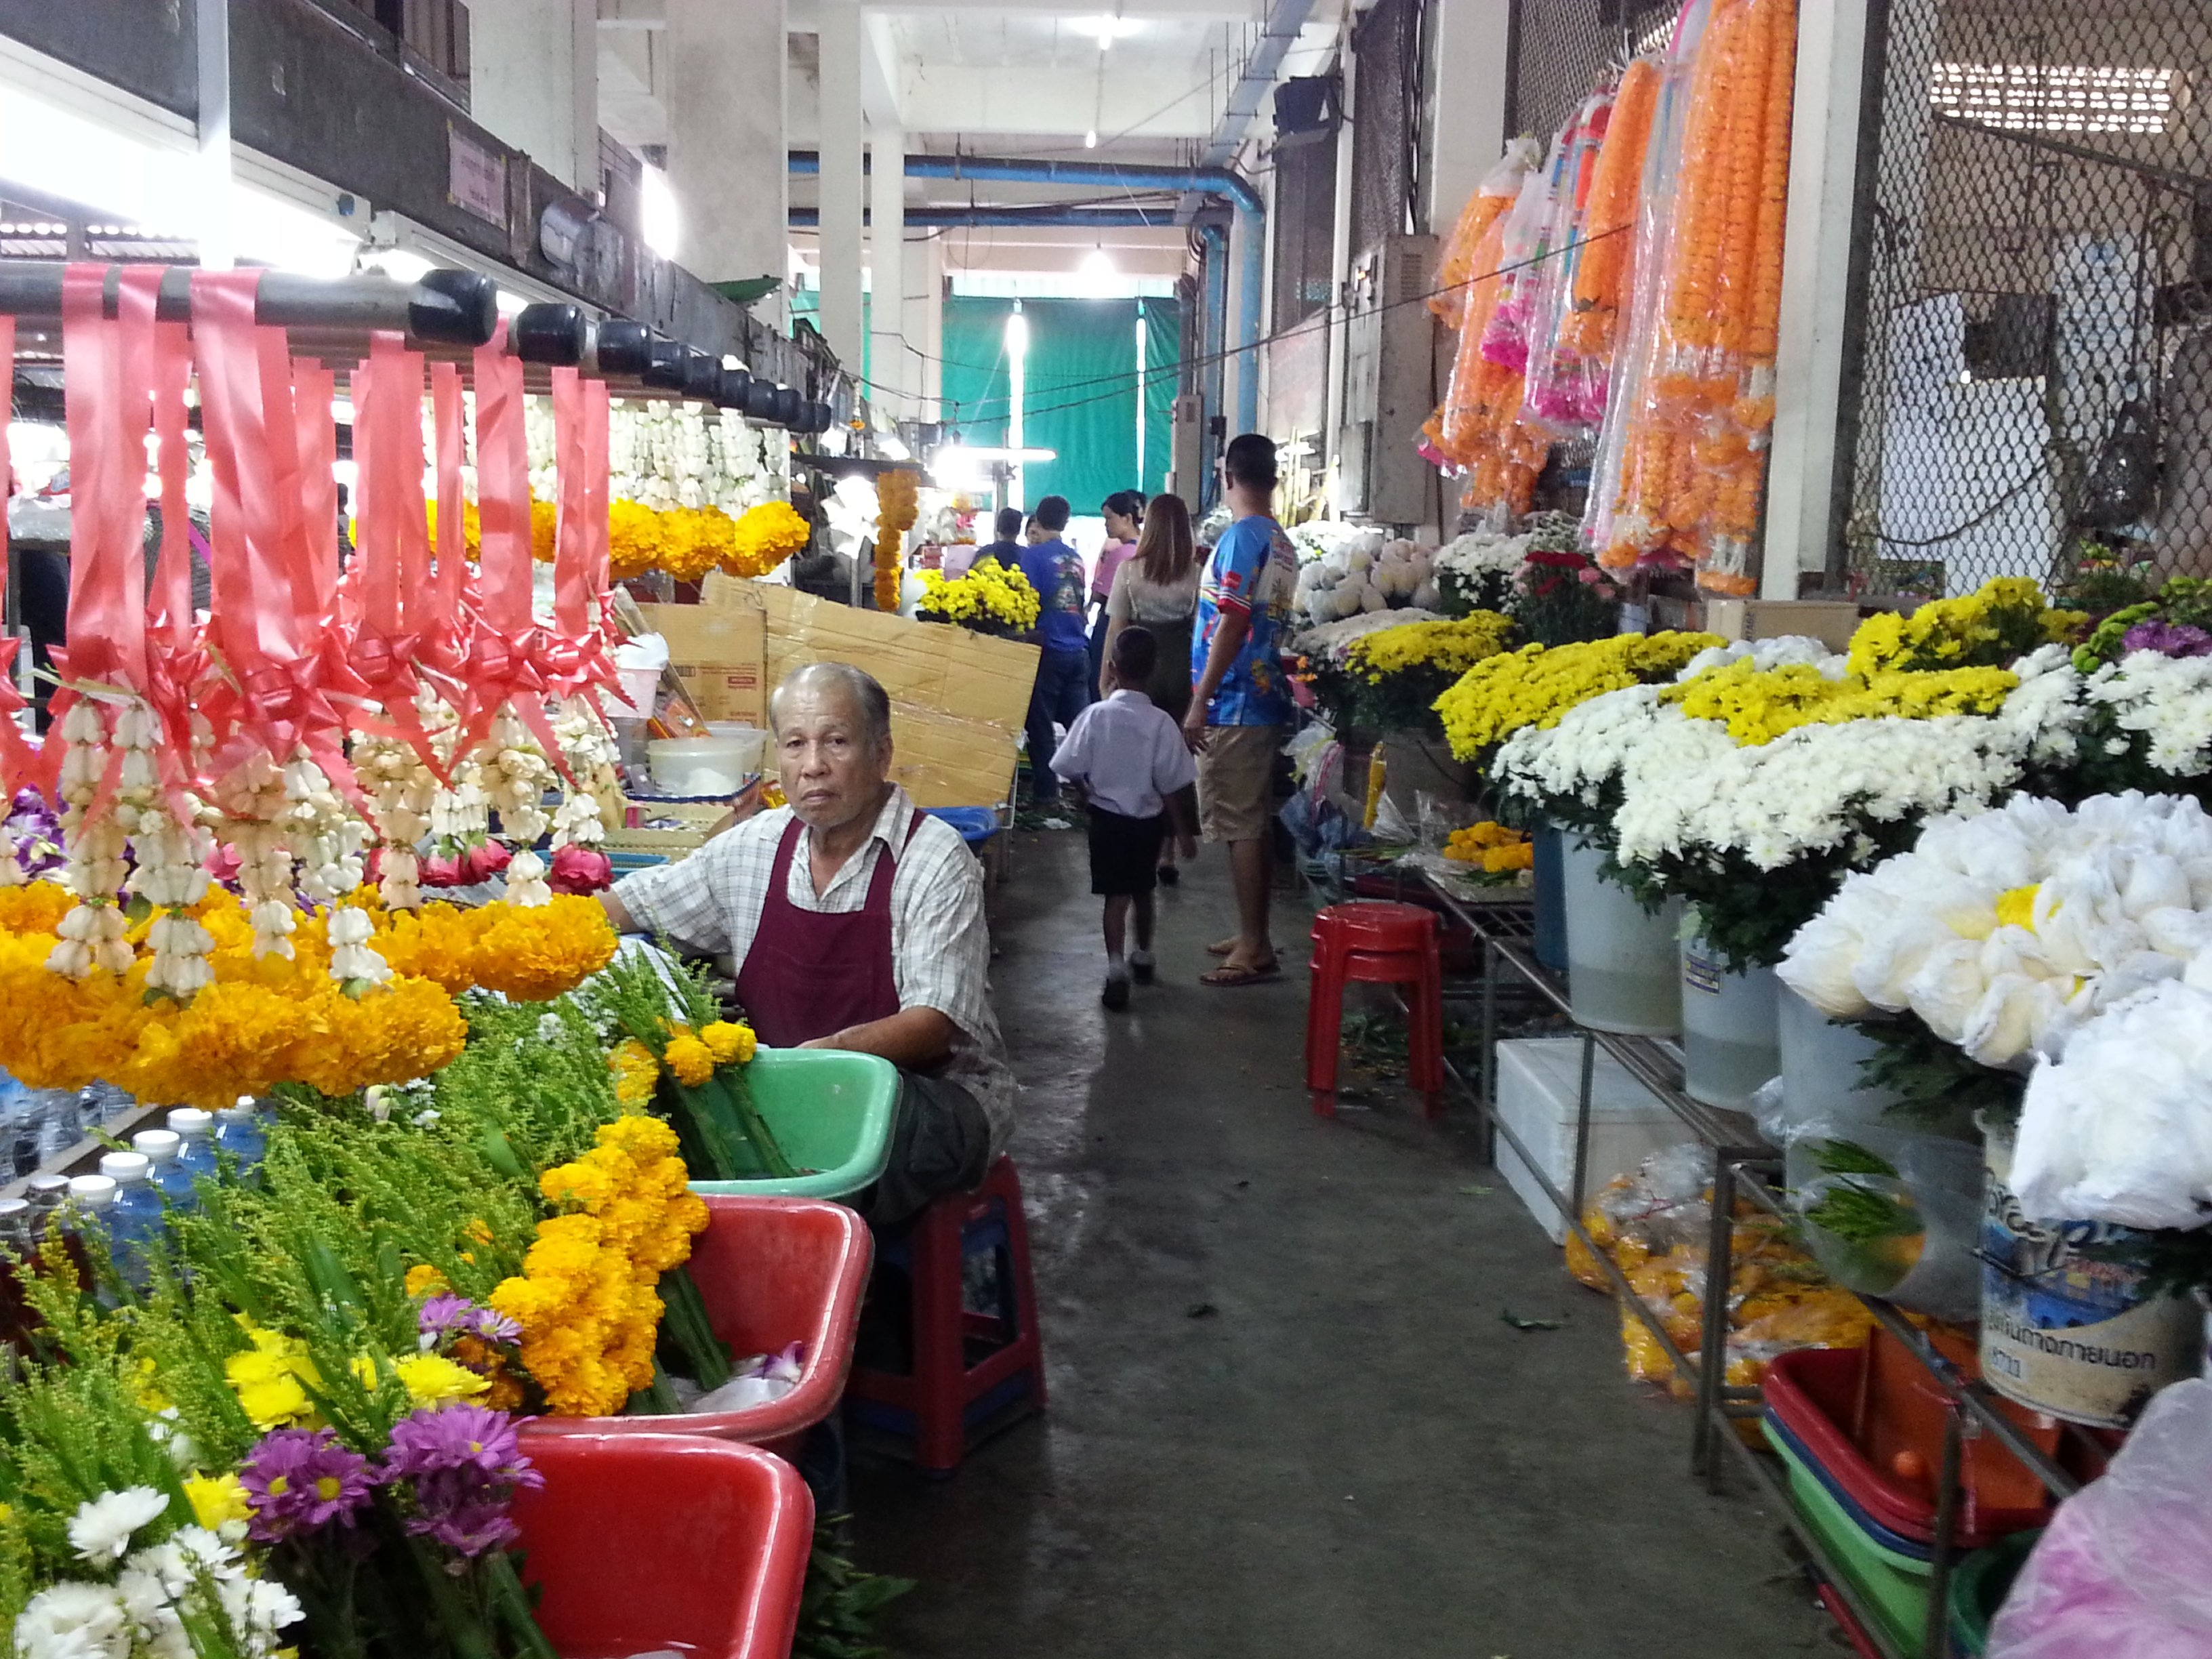 Flower sellers at Maharaj Food Market